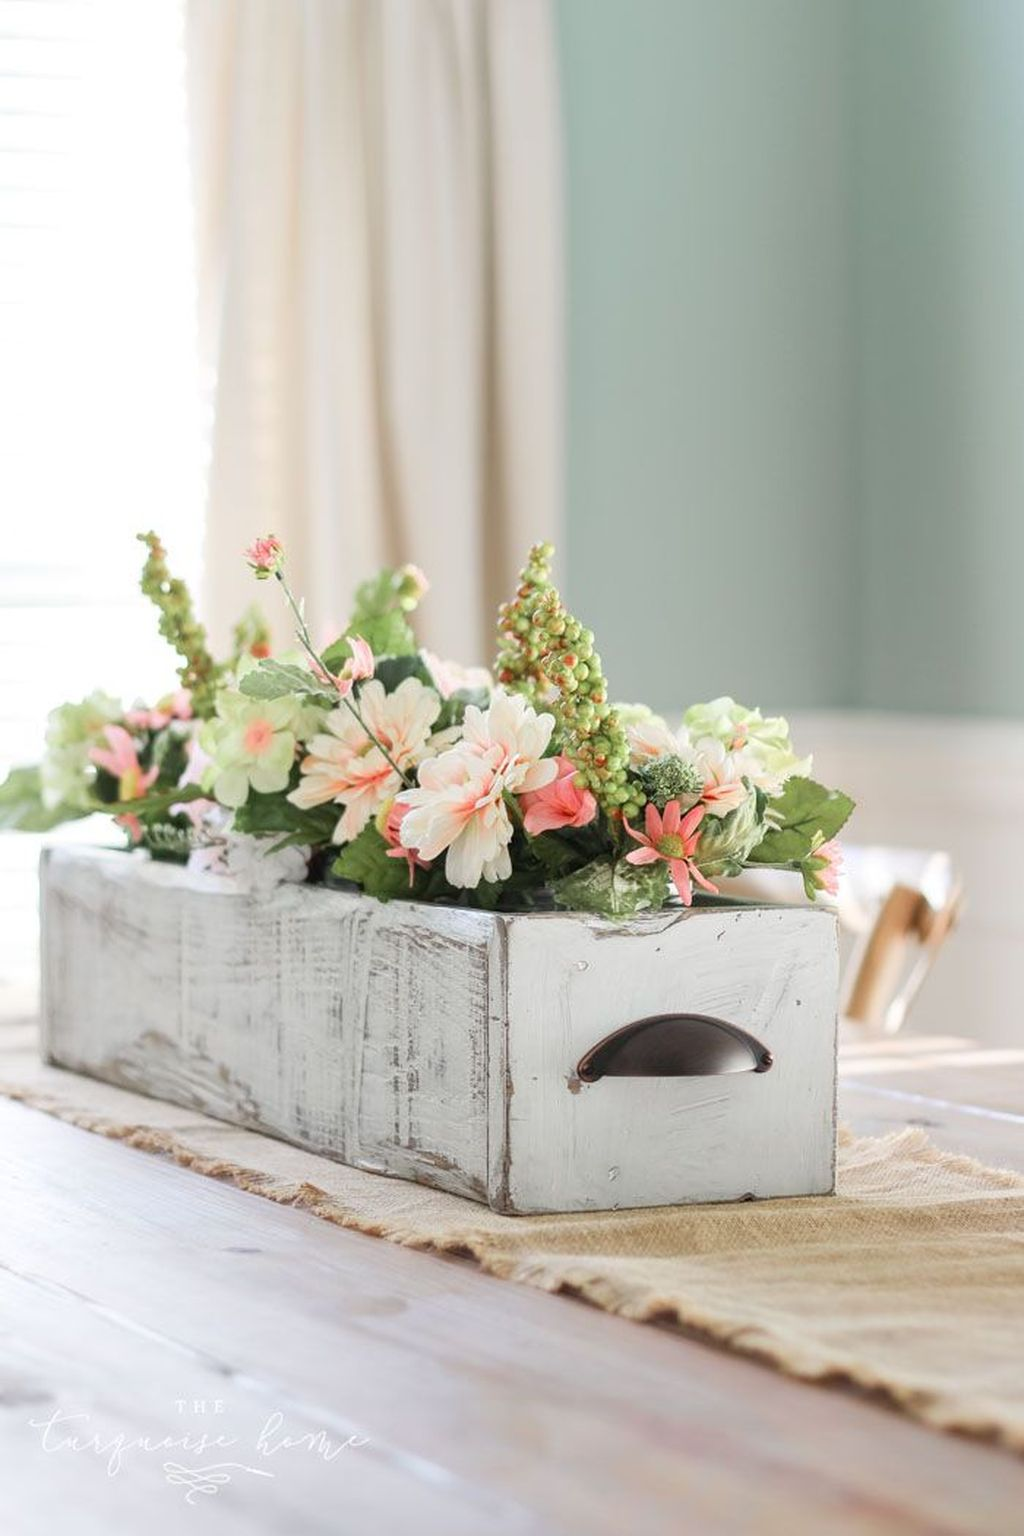 Popular DIY Spring Decor Ideas With Rustic Style 10